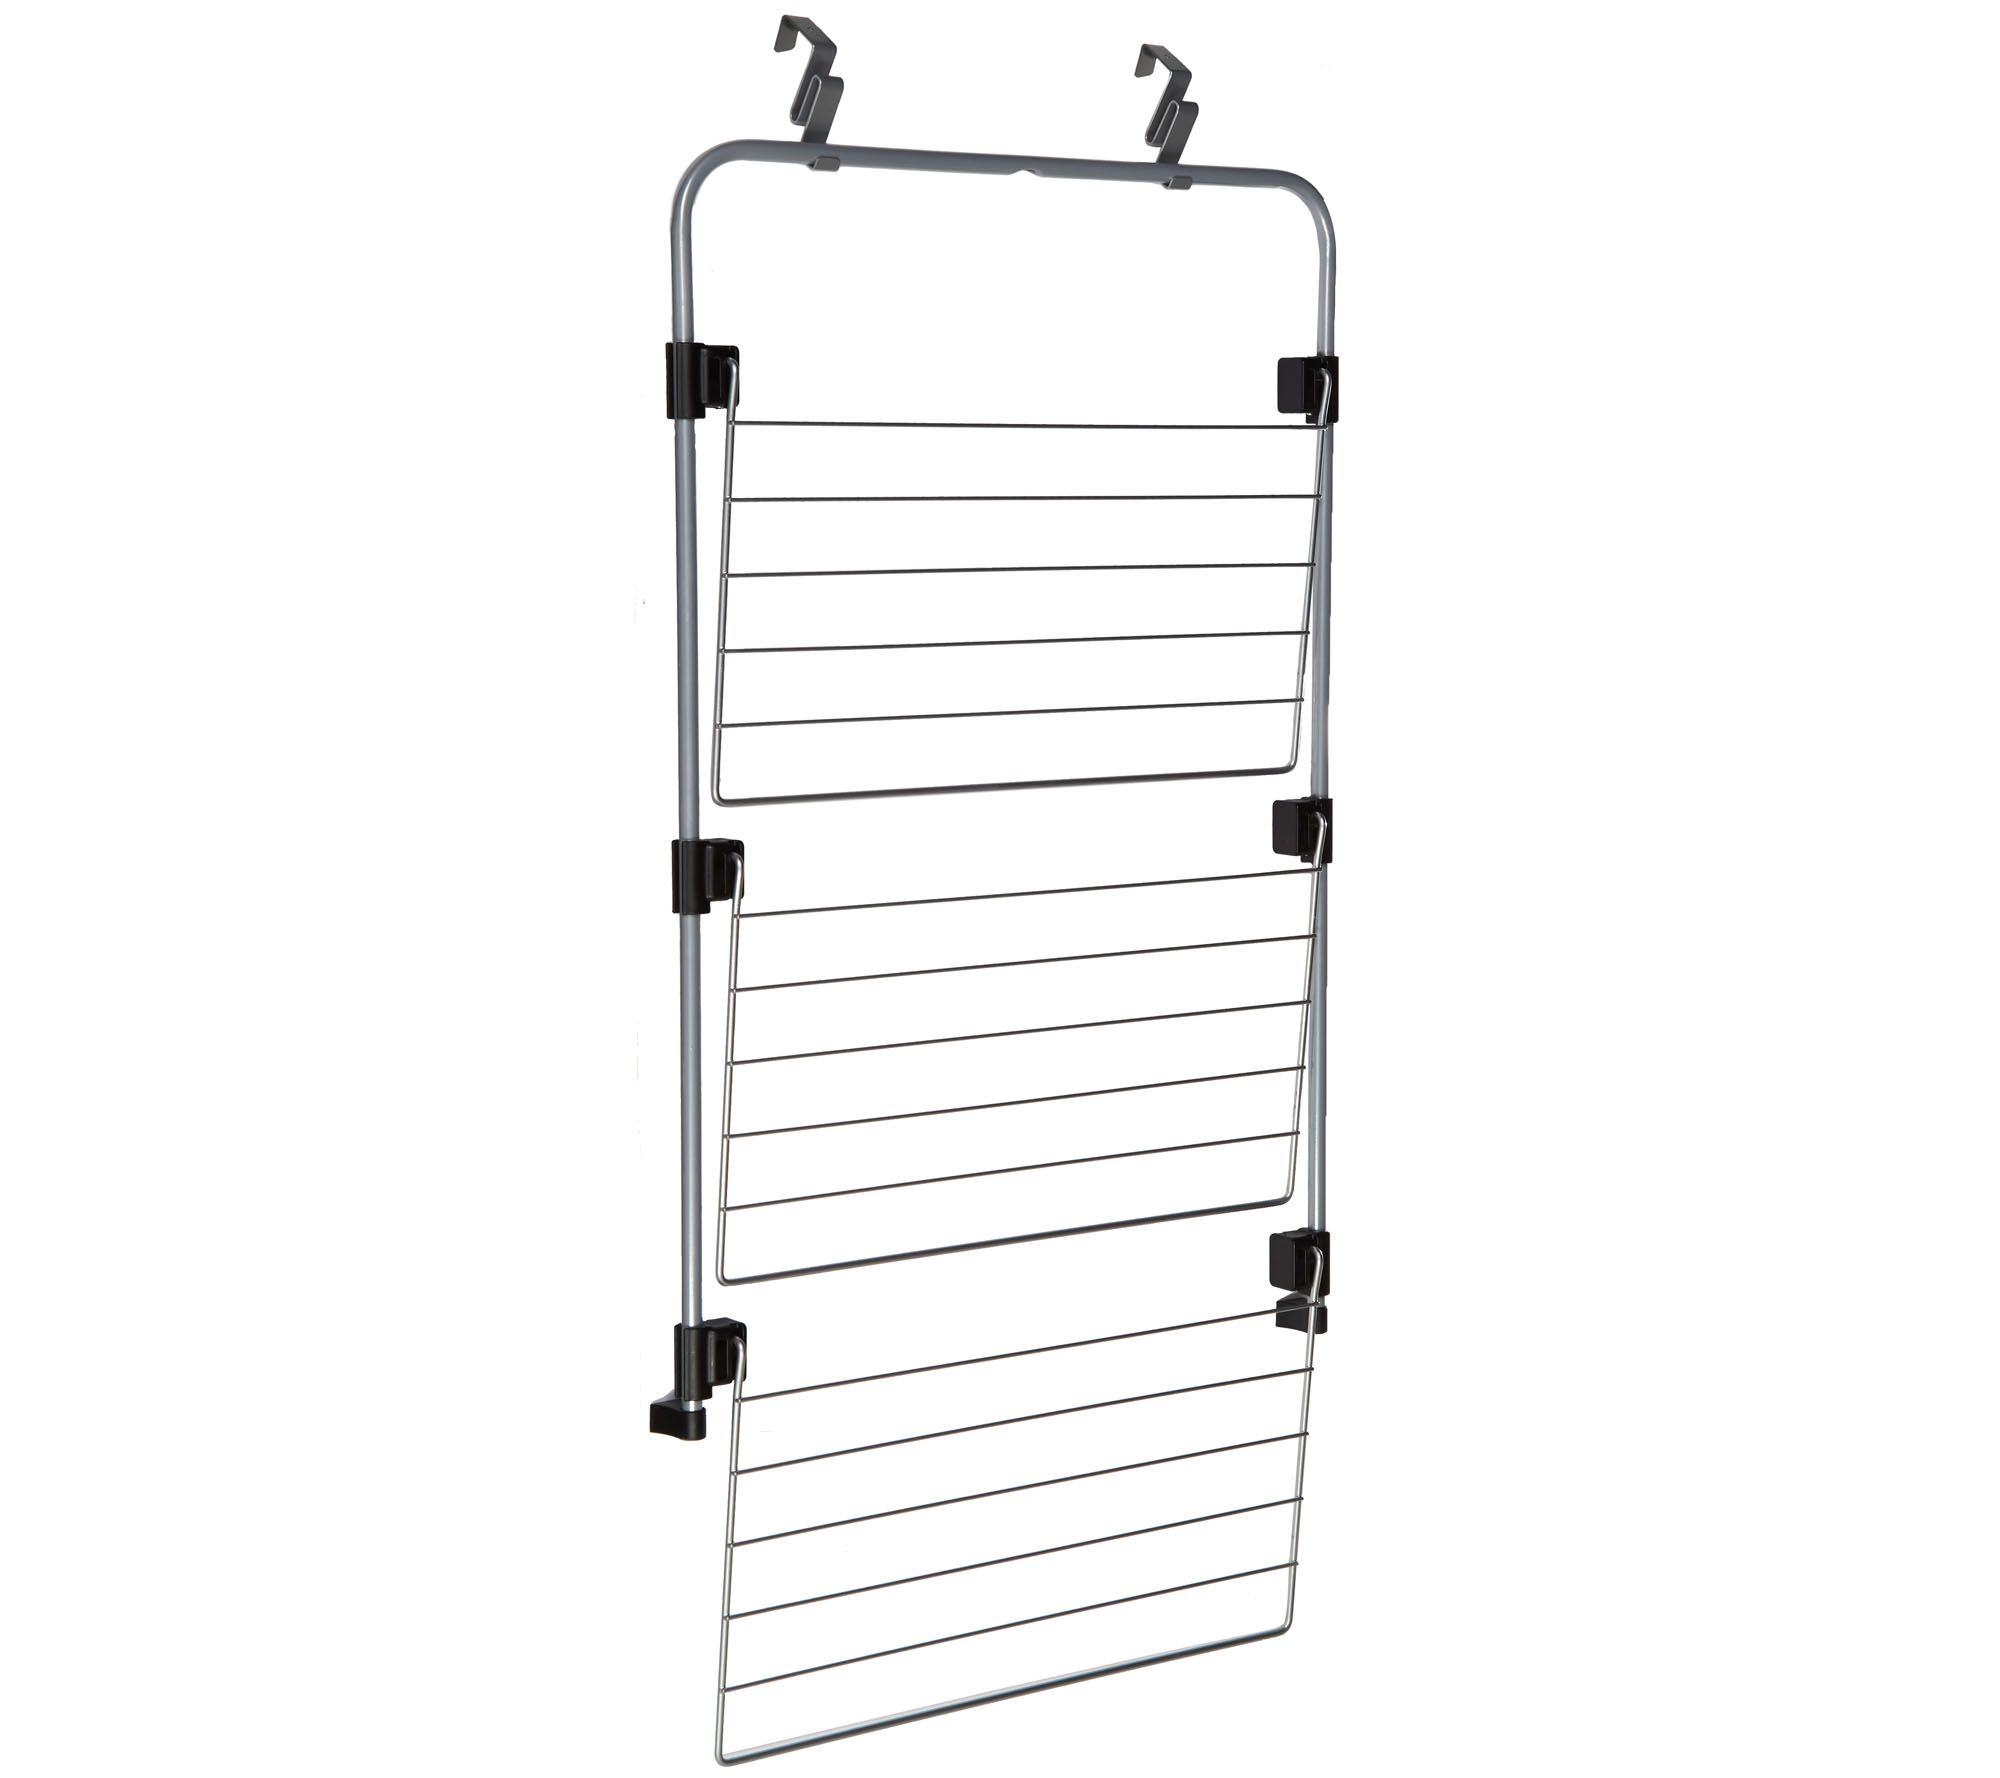 Metaltex Over The Door Clothing And Towel Drying Rack Page 1 Qvccom